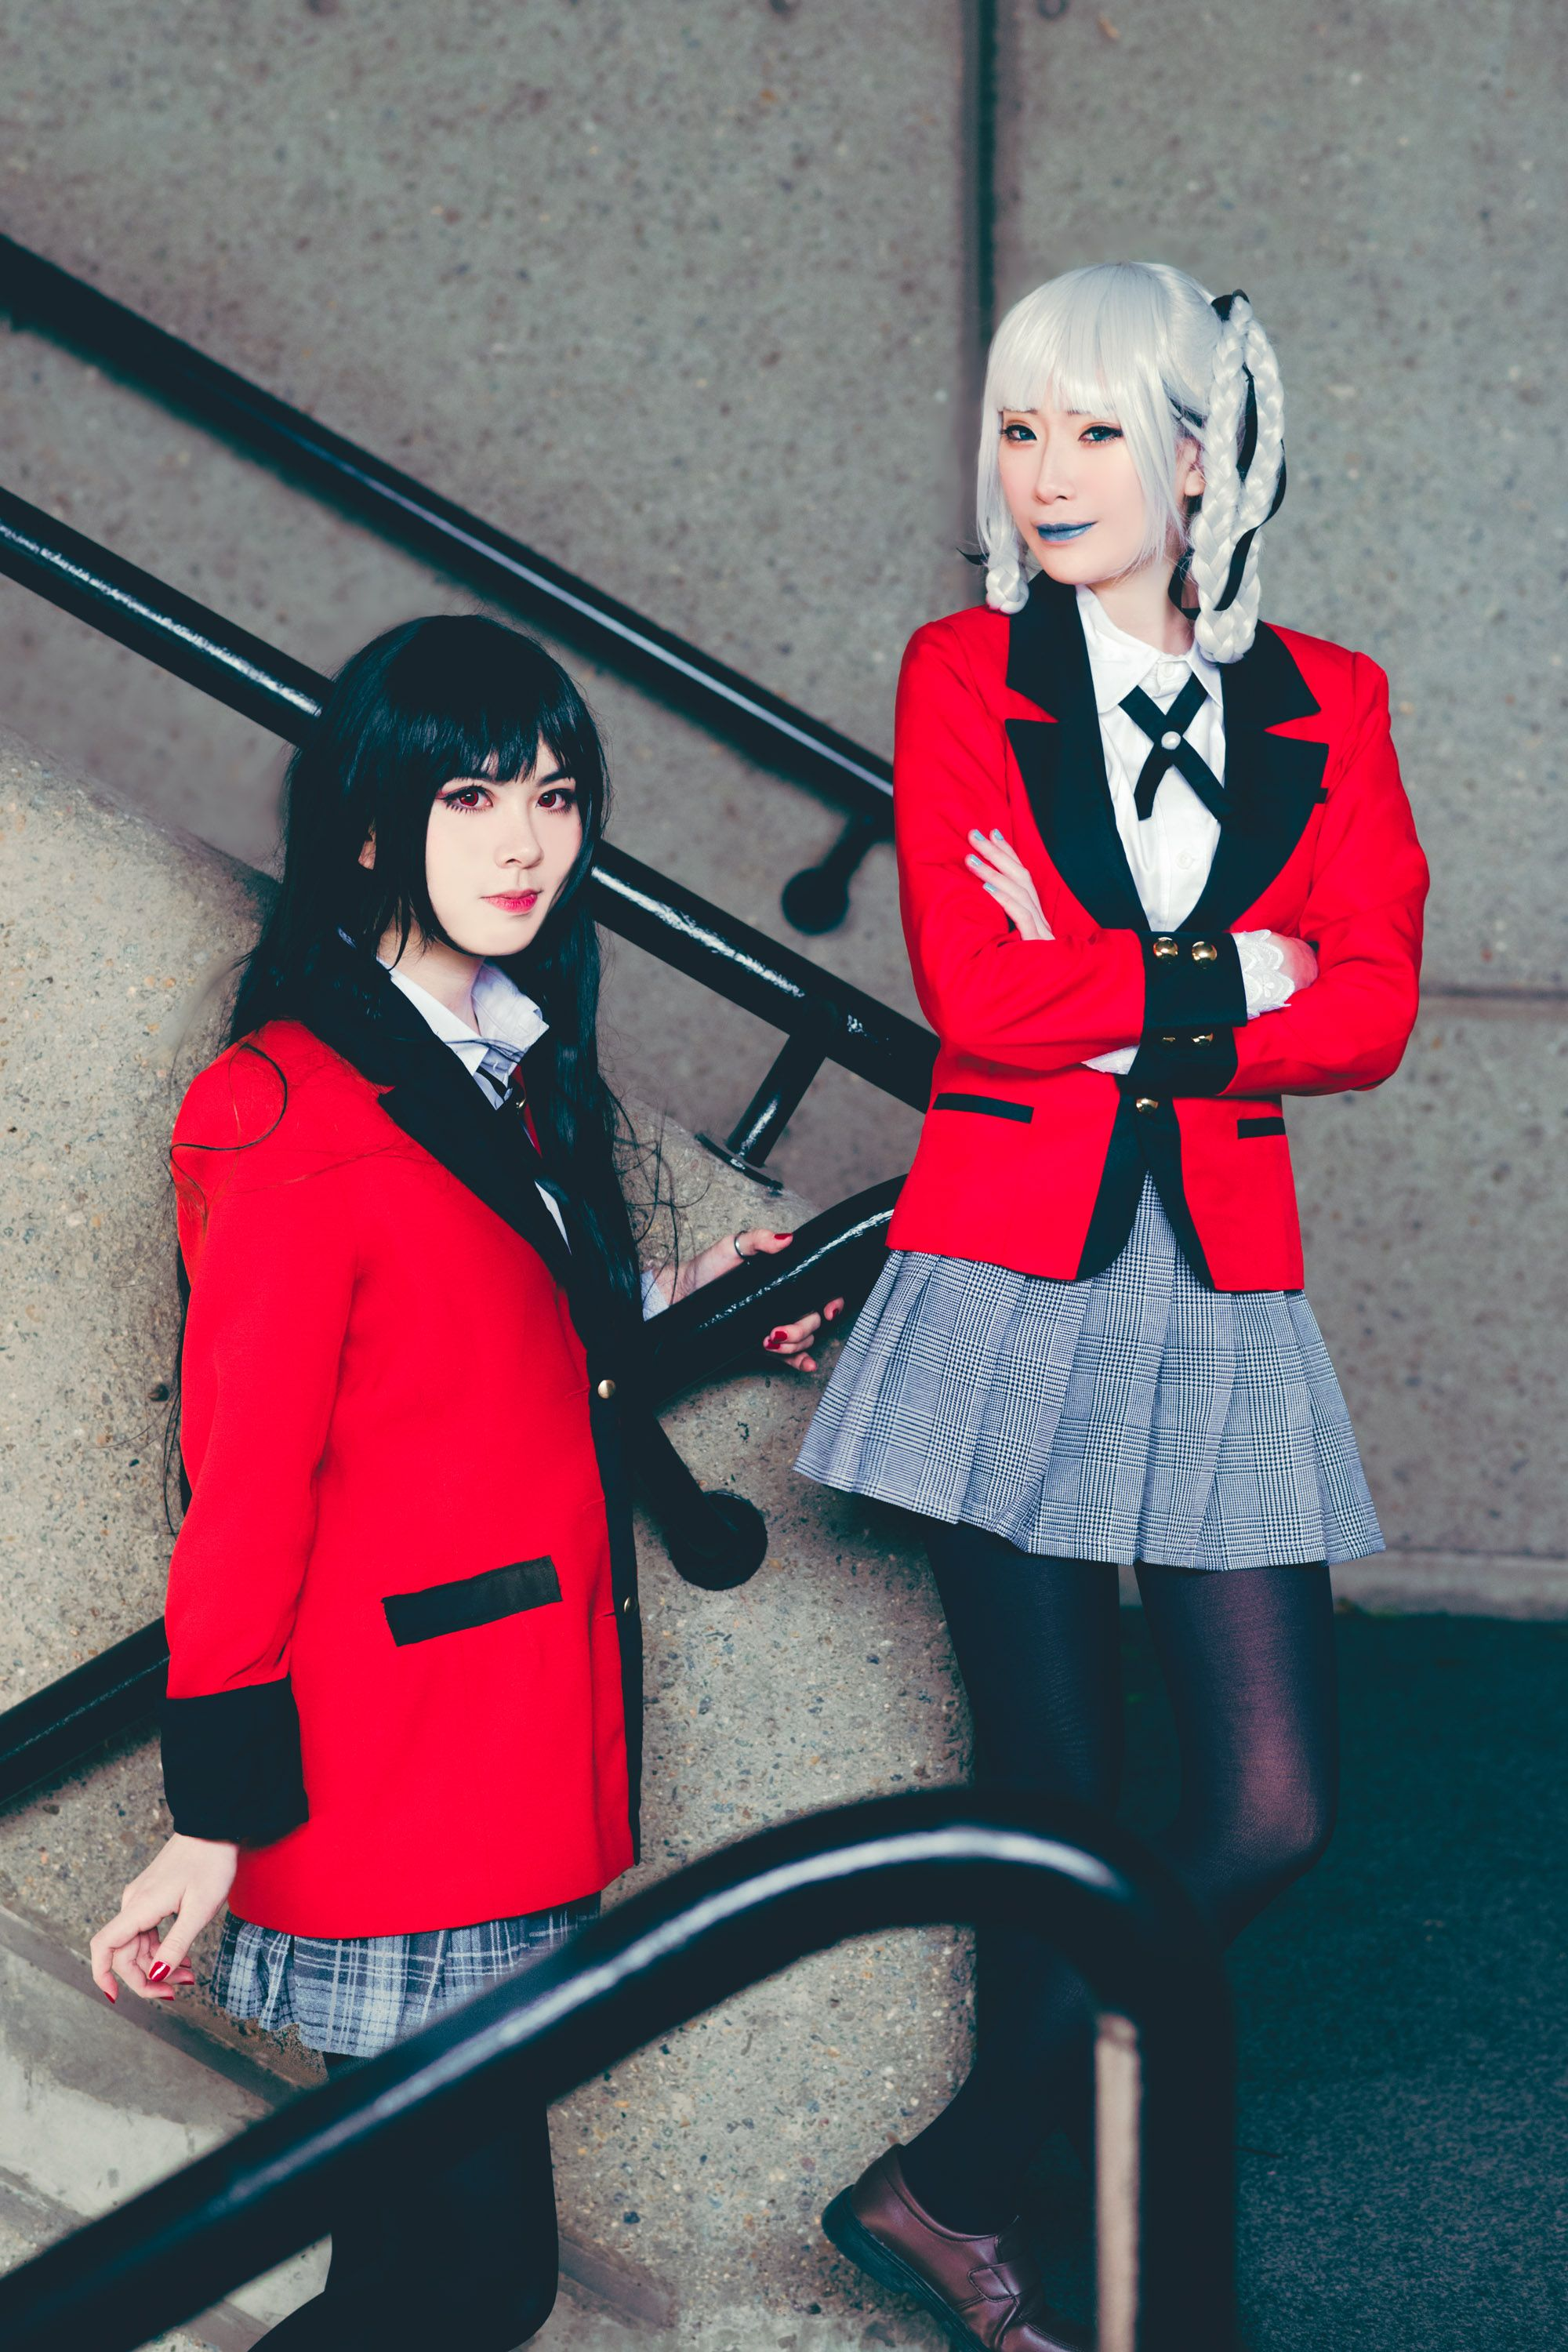 [Self] Let's Gamble Like Crazy! Kakegurui cosplay cosplay